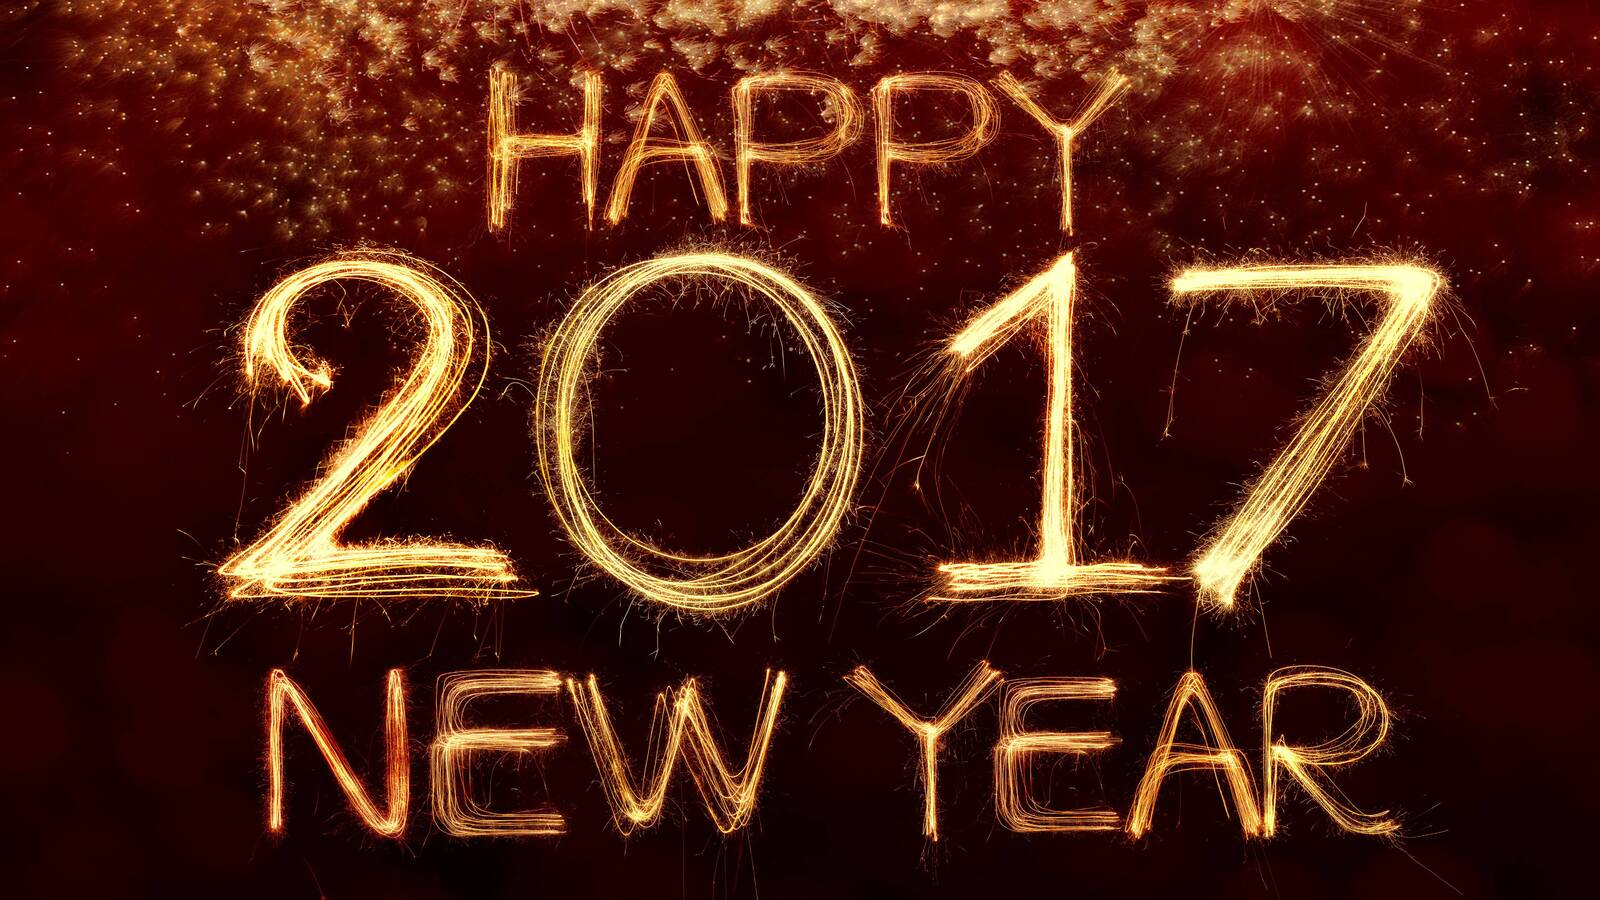 1600x900 Happy New Year 2017 Hd 1600x900 Resolution Hd 4k